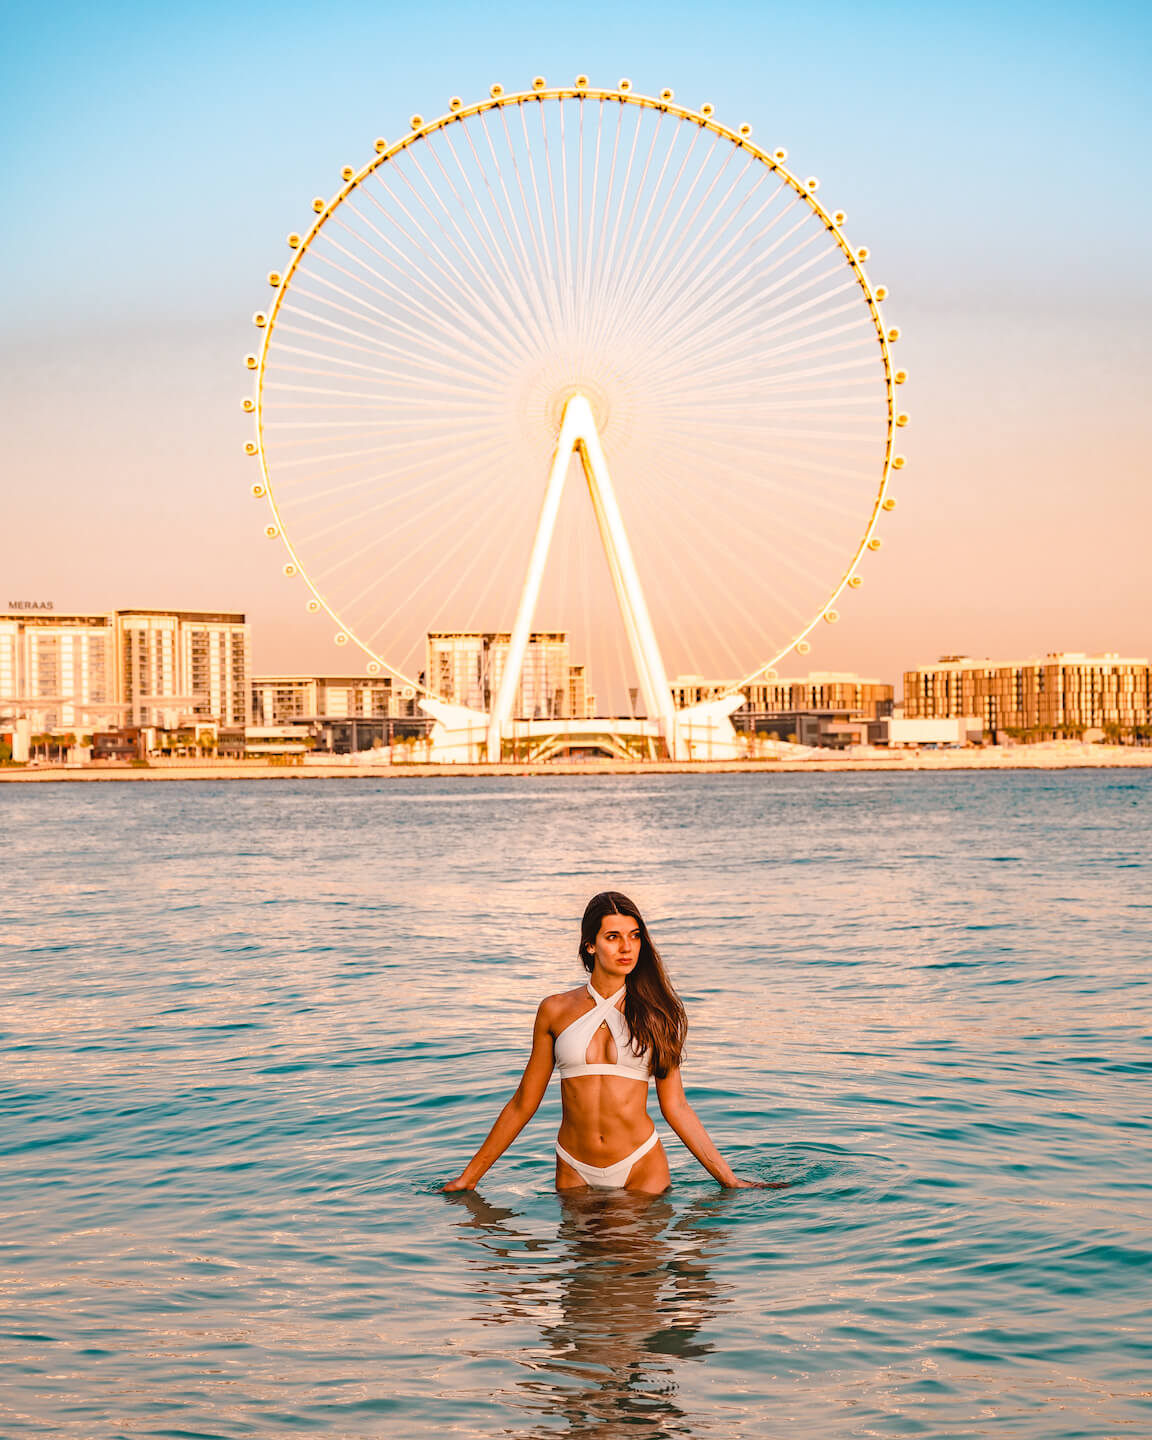 sunrise at the beach with a view at the Ferris wheel in dubai